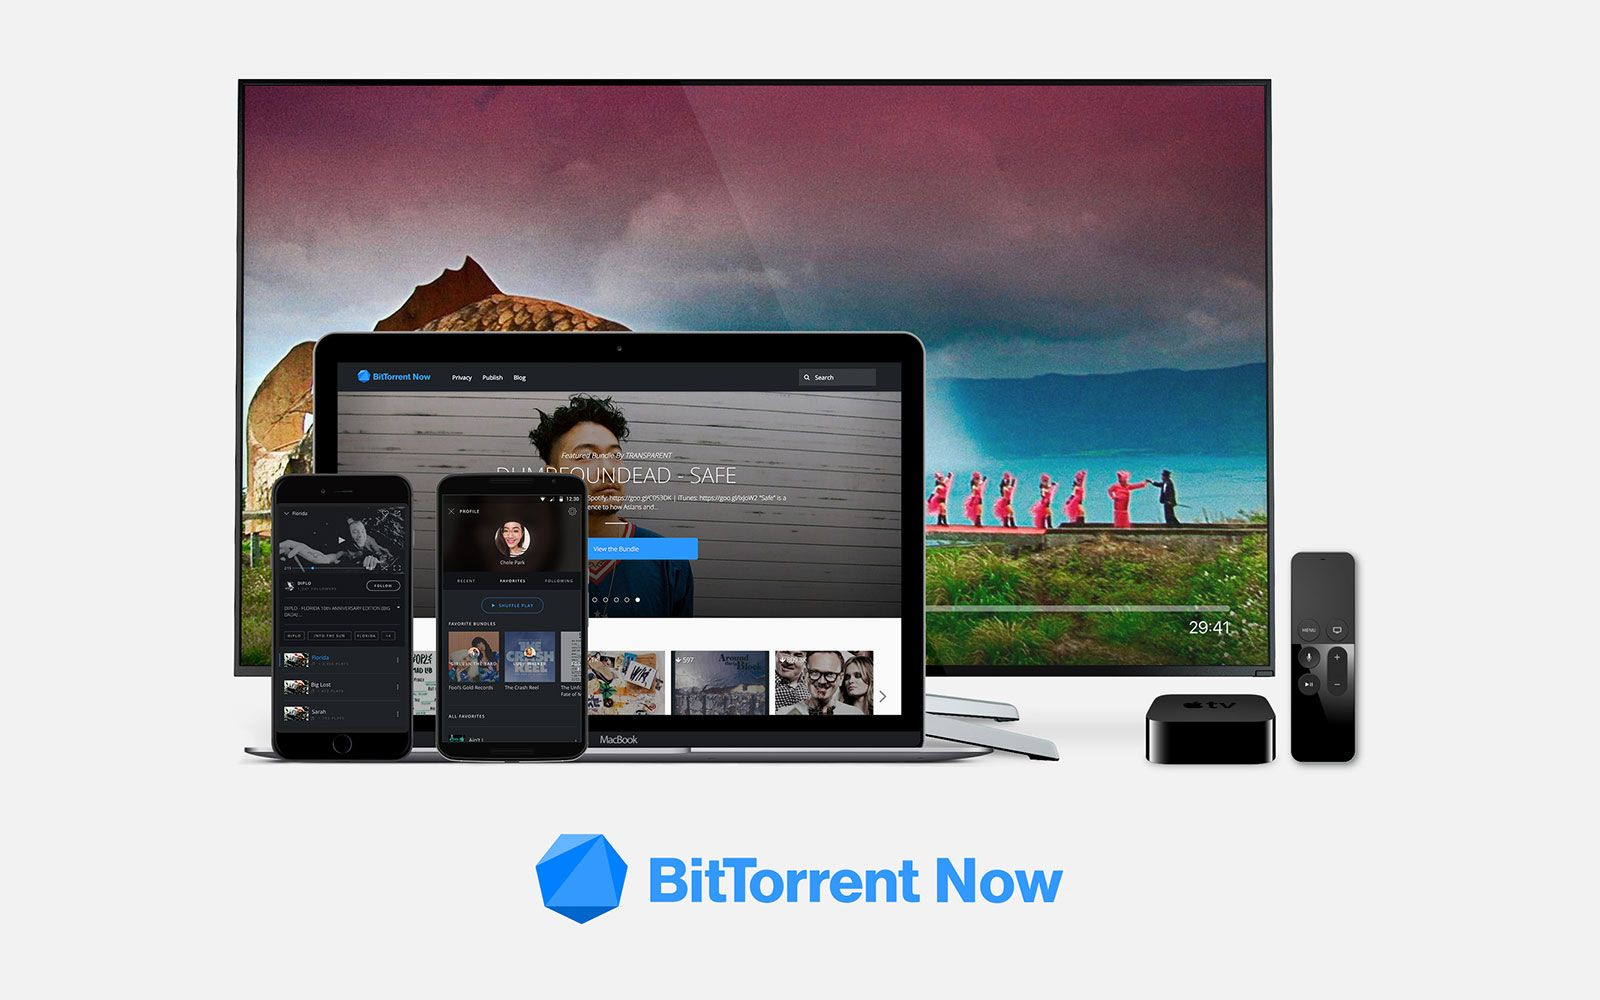 Bittorrent Now Is An Open Ad Supported Music And Video Platform Engadget